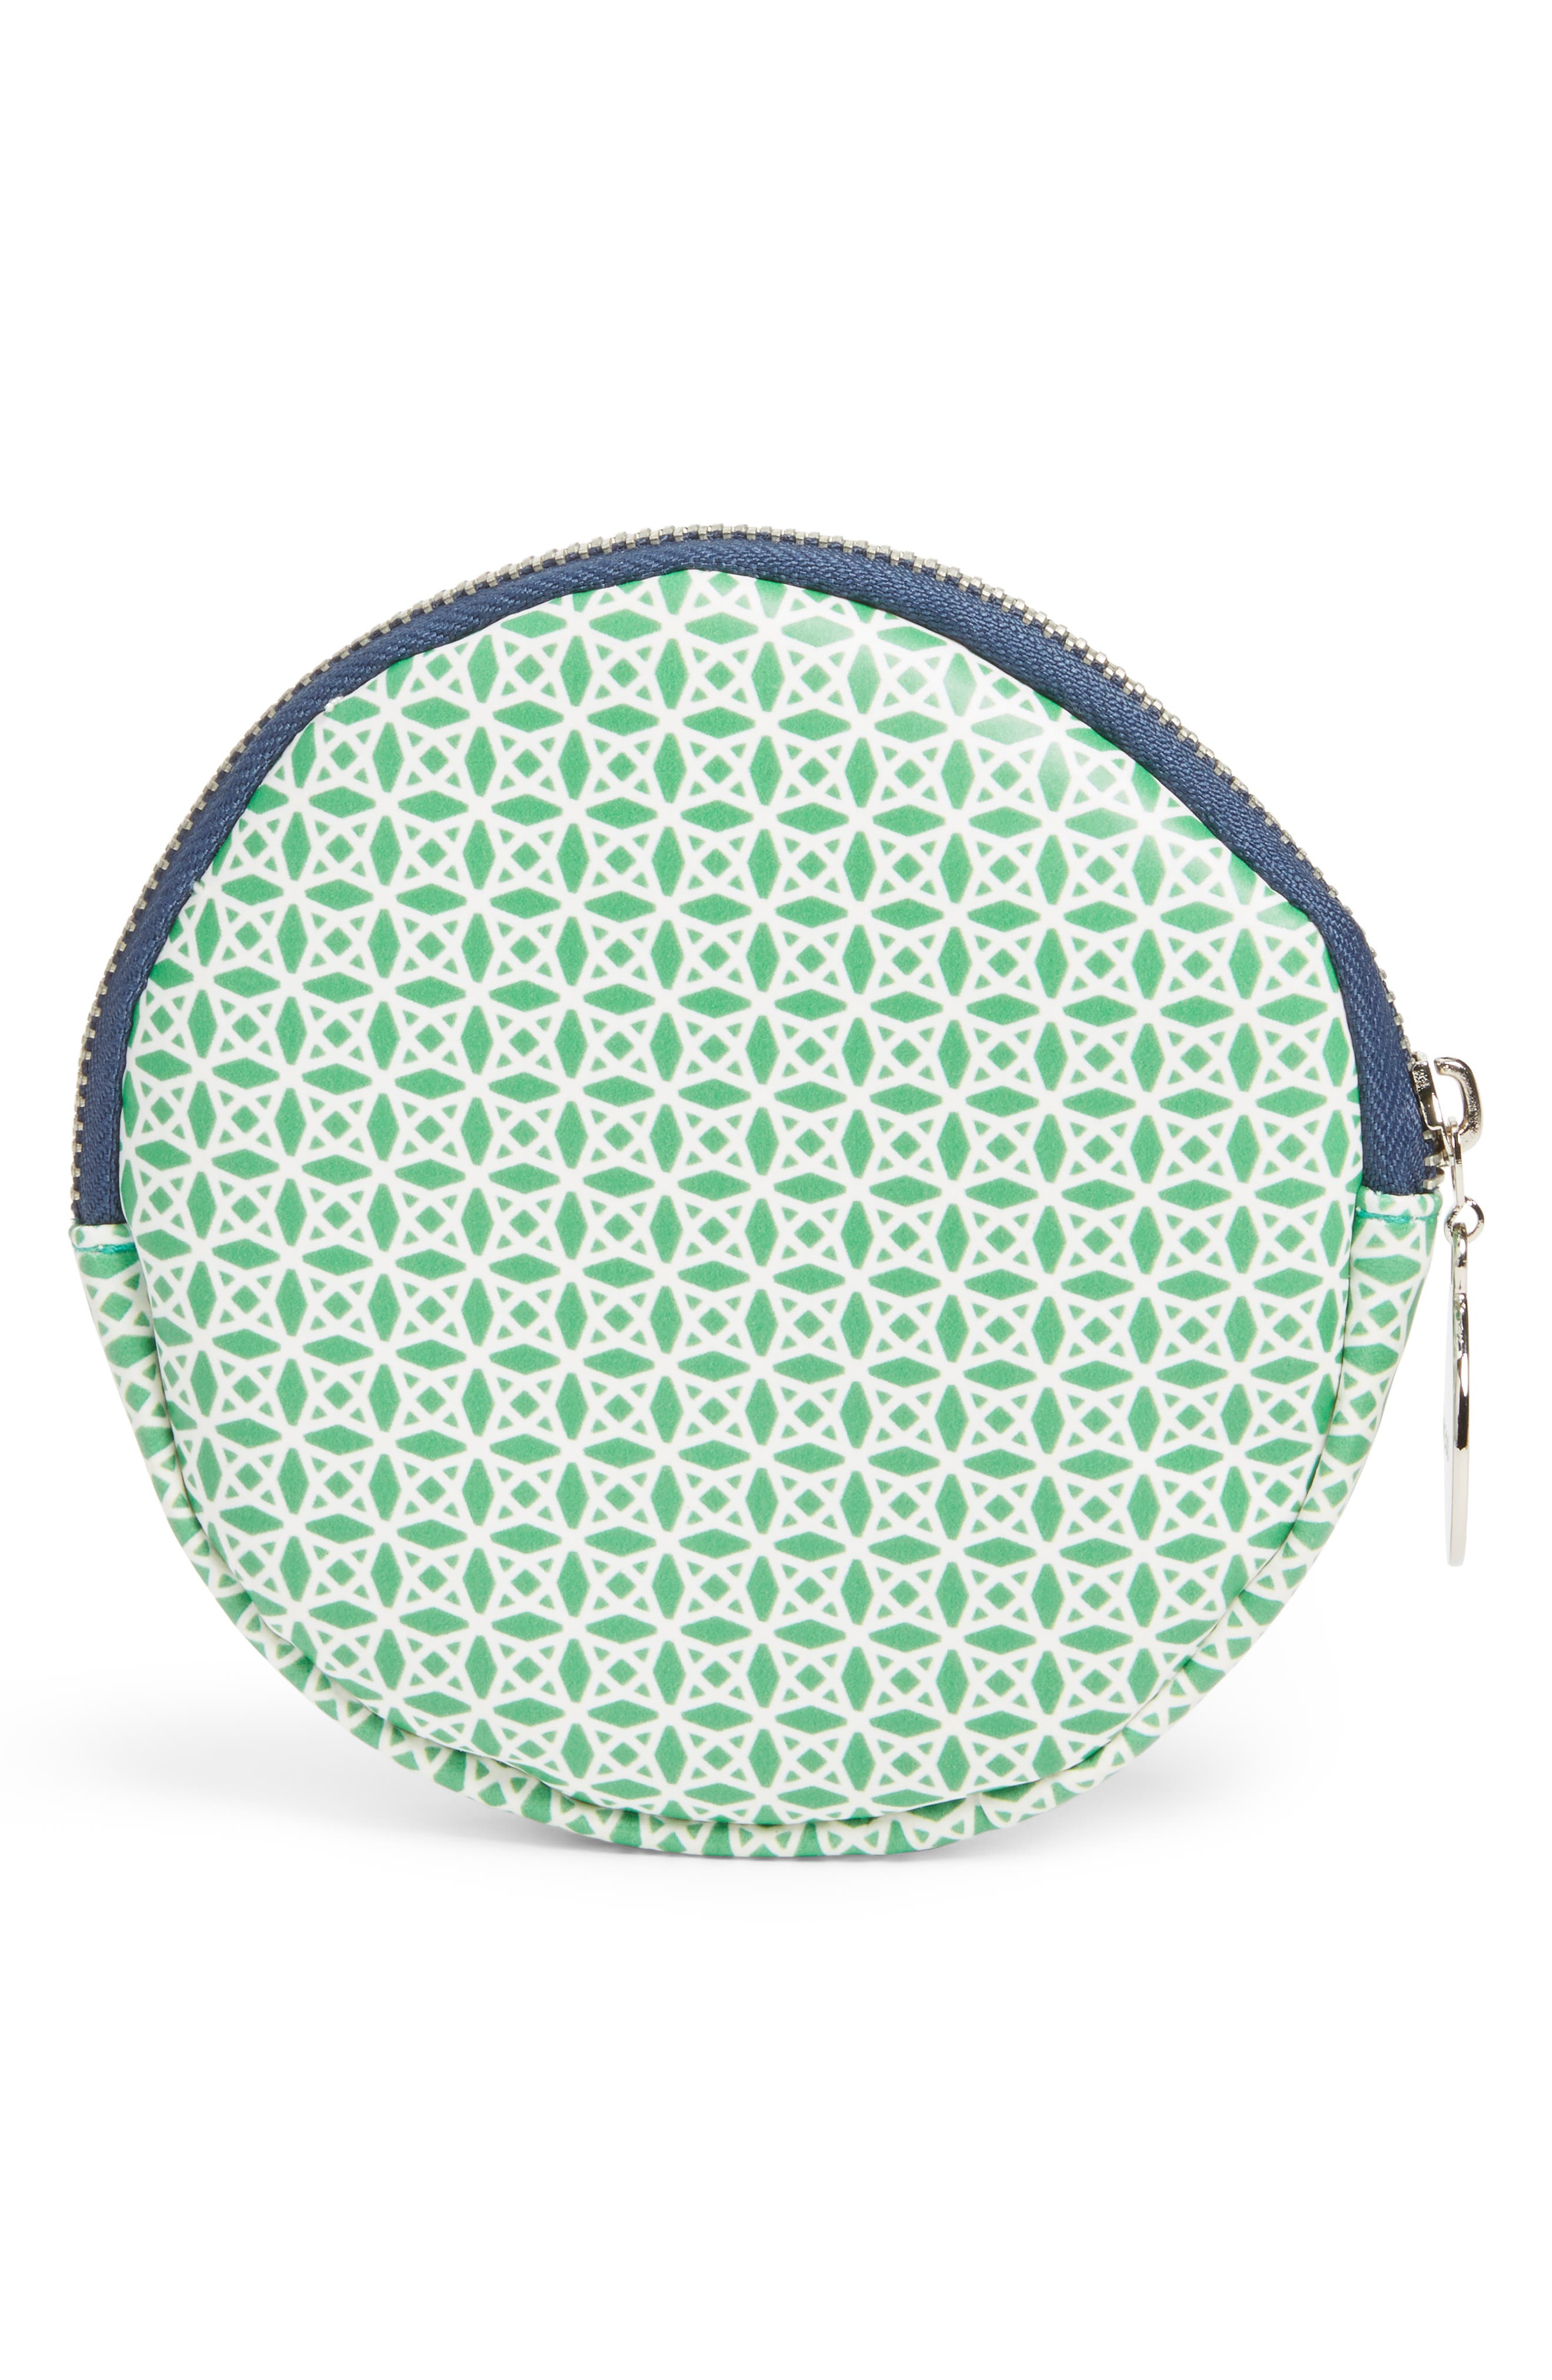 Round Cosmetics Bag,                             Alternate thumbnail 2, color,                             300